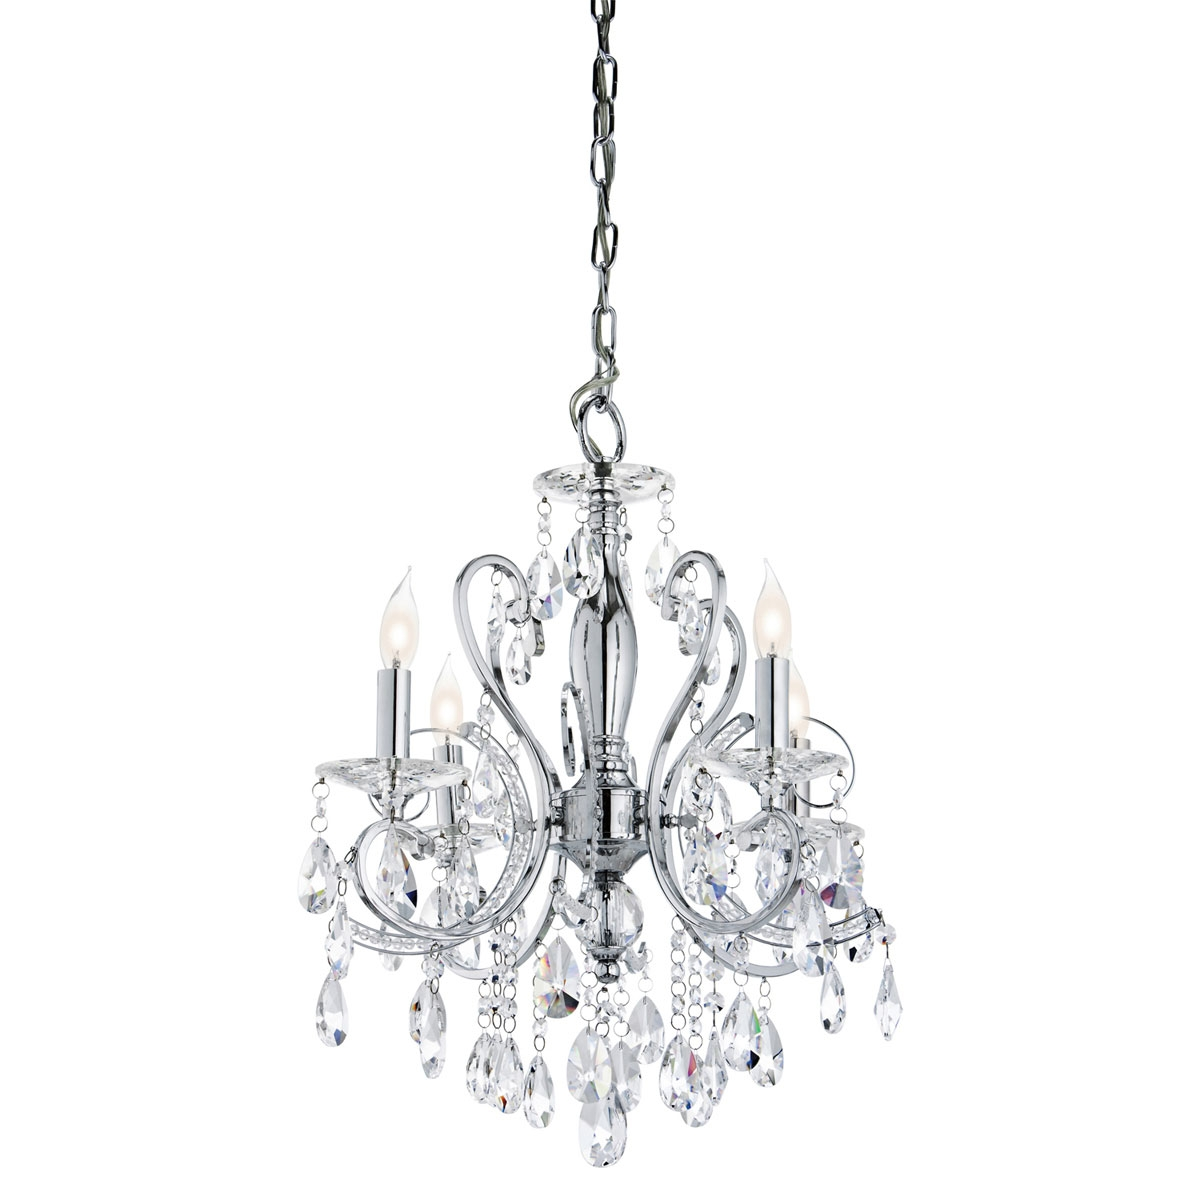 12 best ideas of modern small chandeliers - Small crystal chandelier for bathroom ...